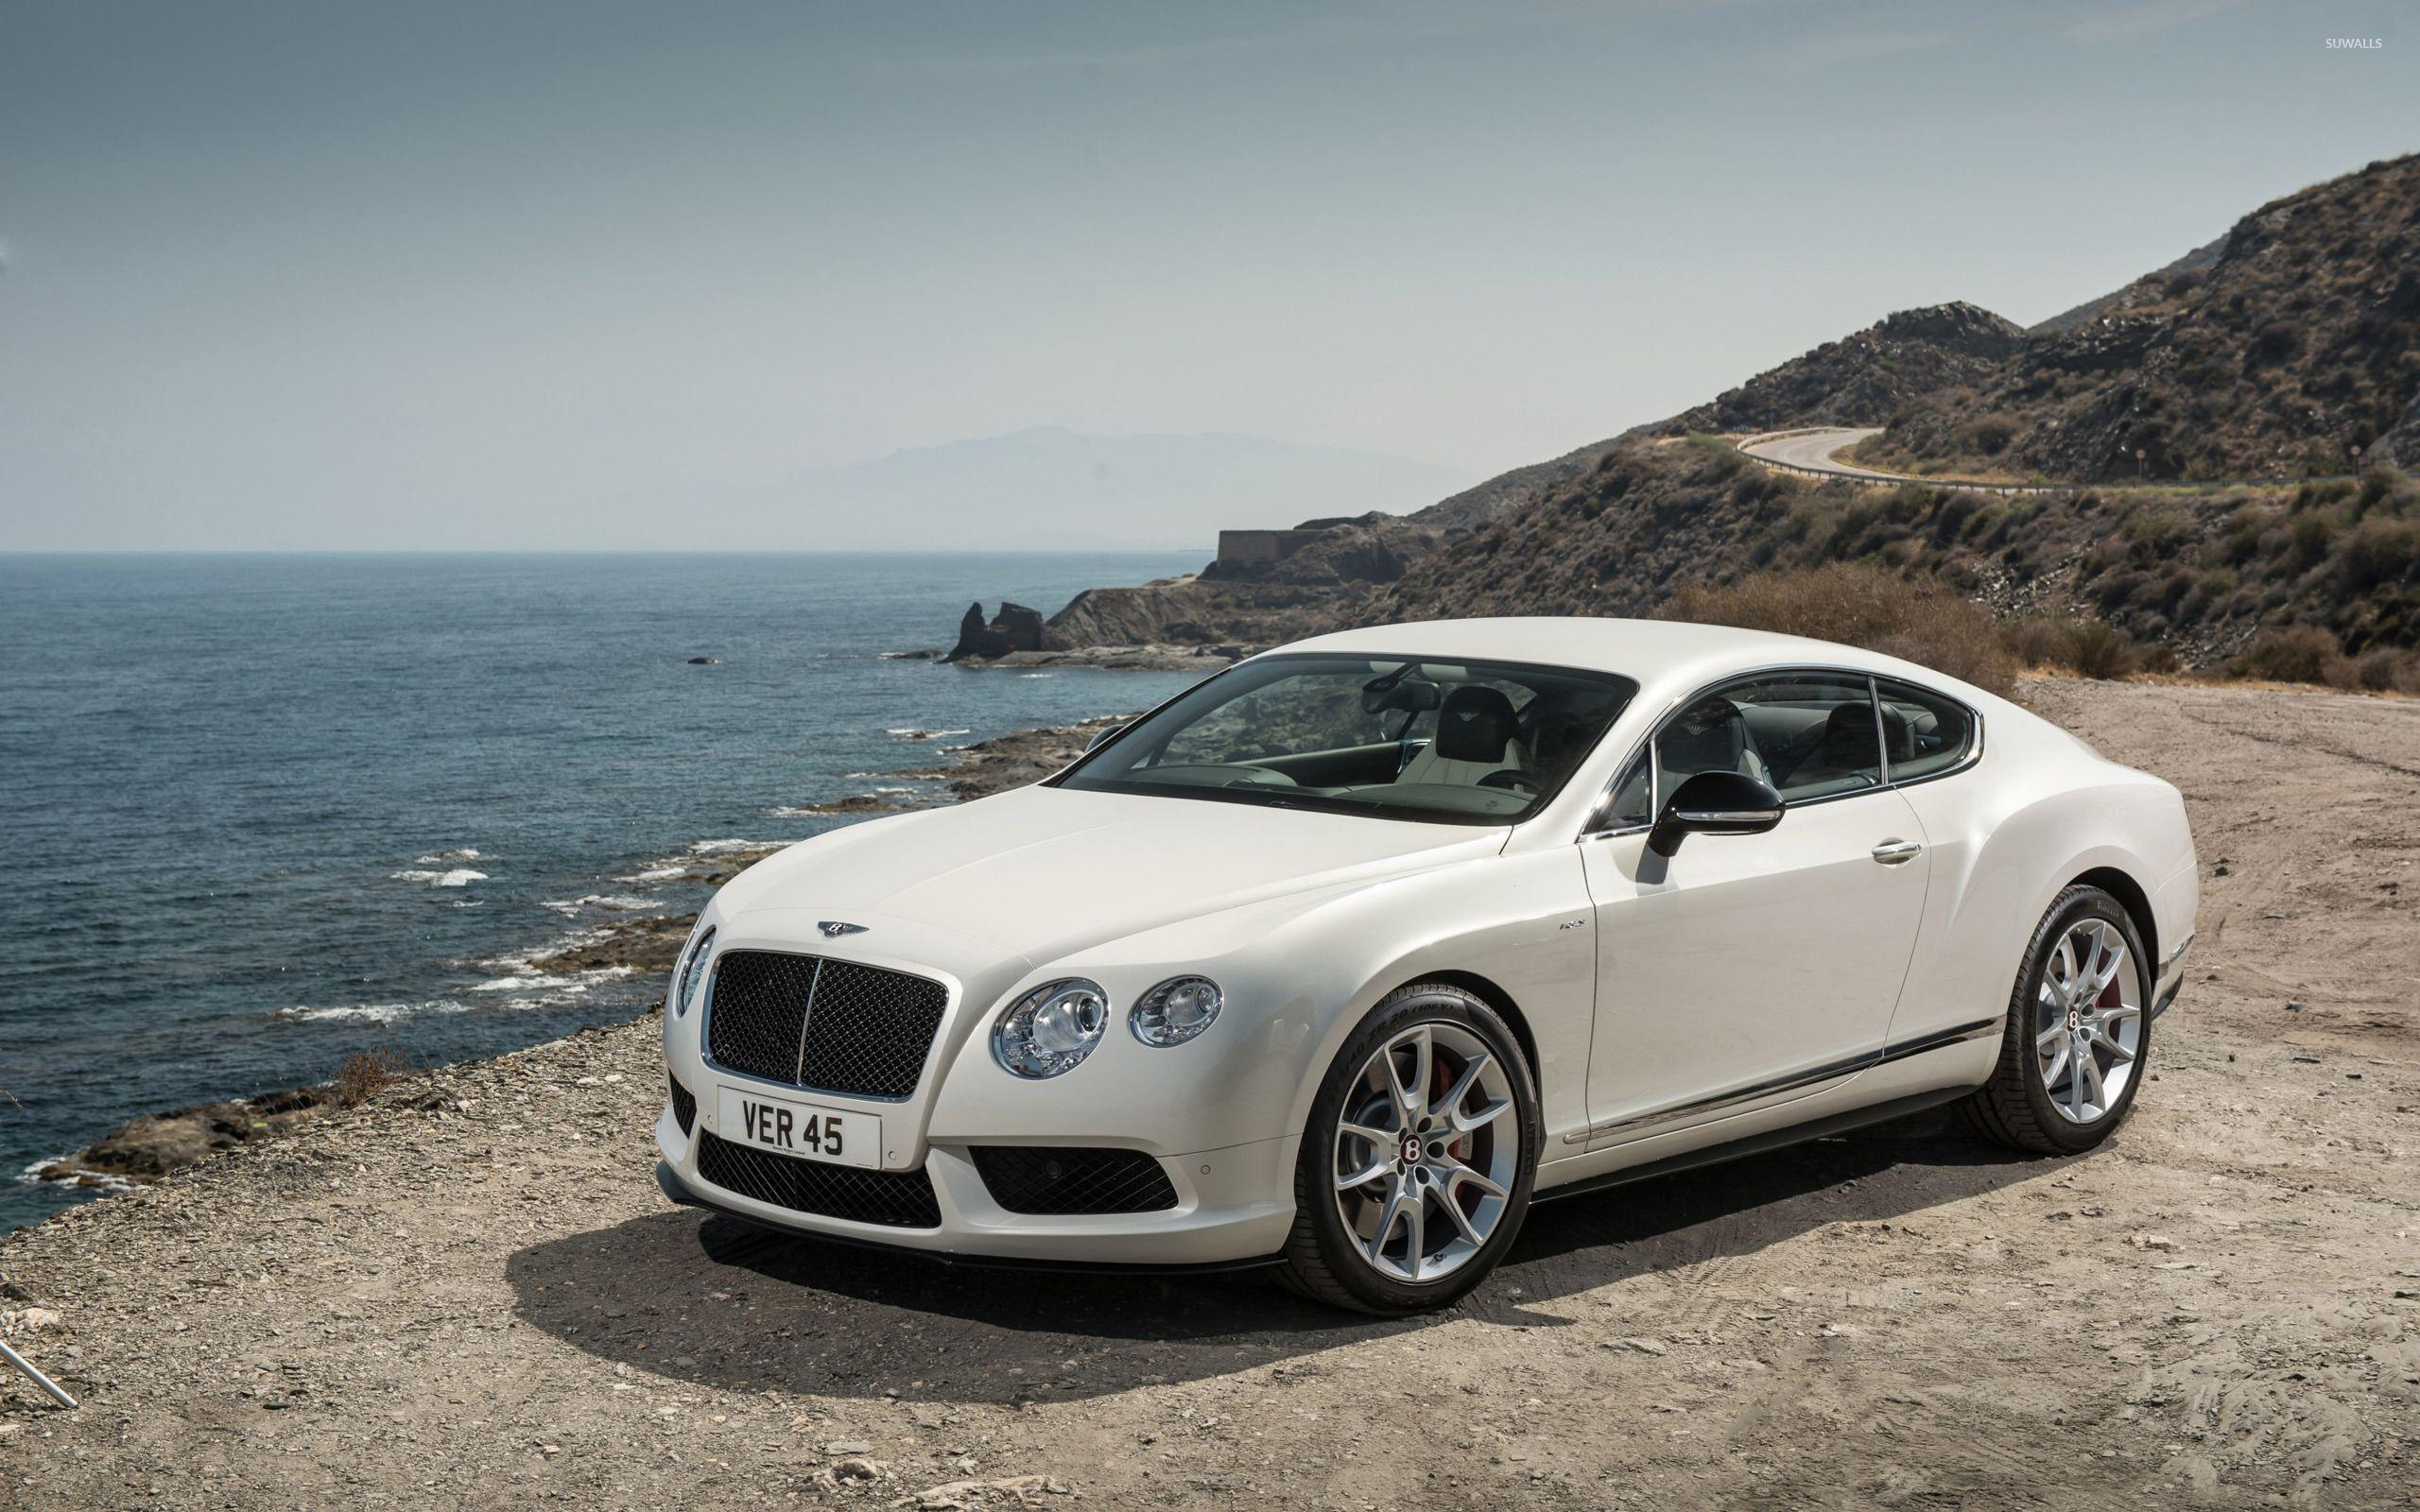 2014 Bentley Continental GT V8 wallpaper - Car wallpapers - #23832